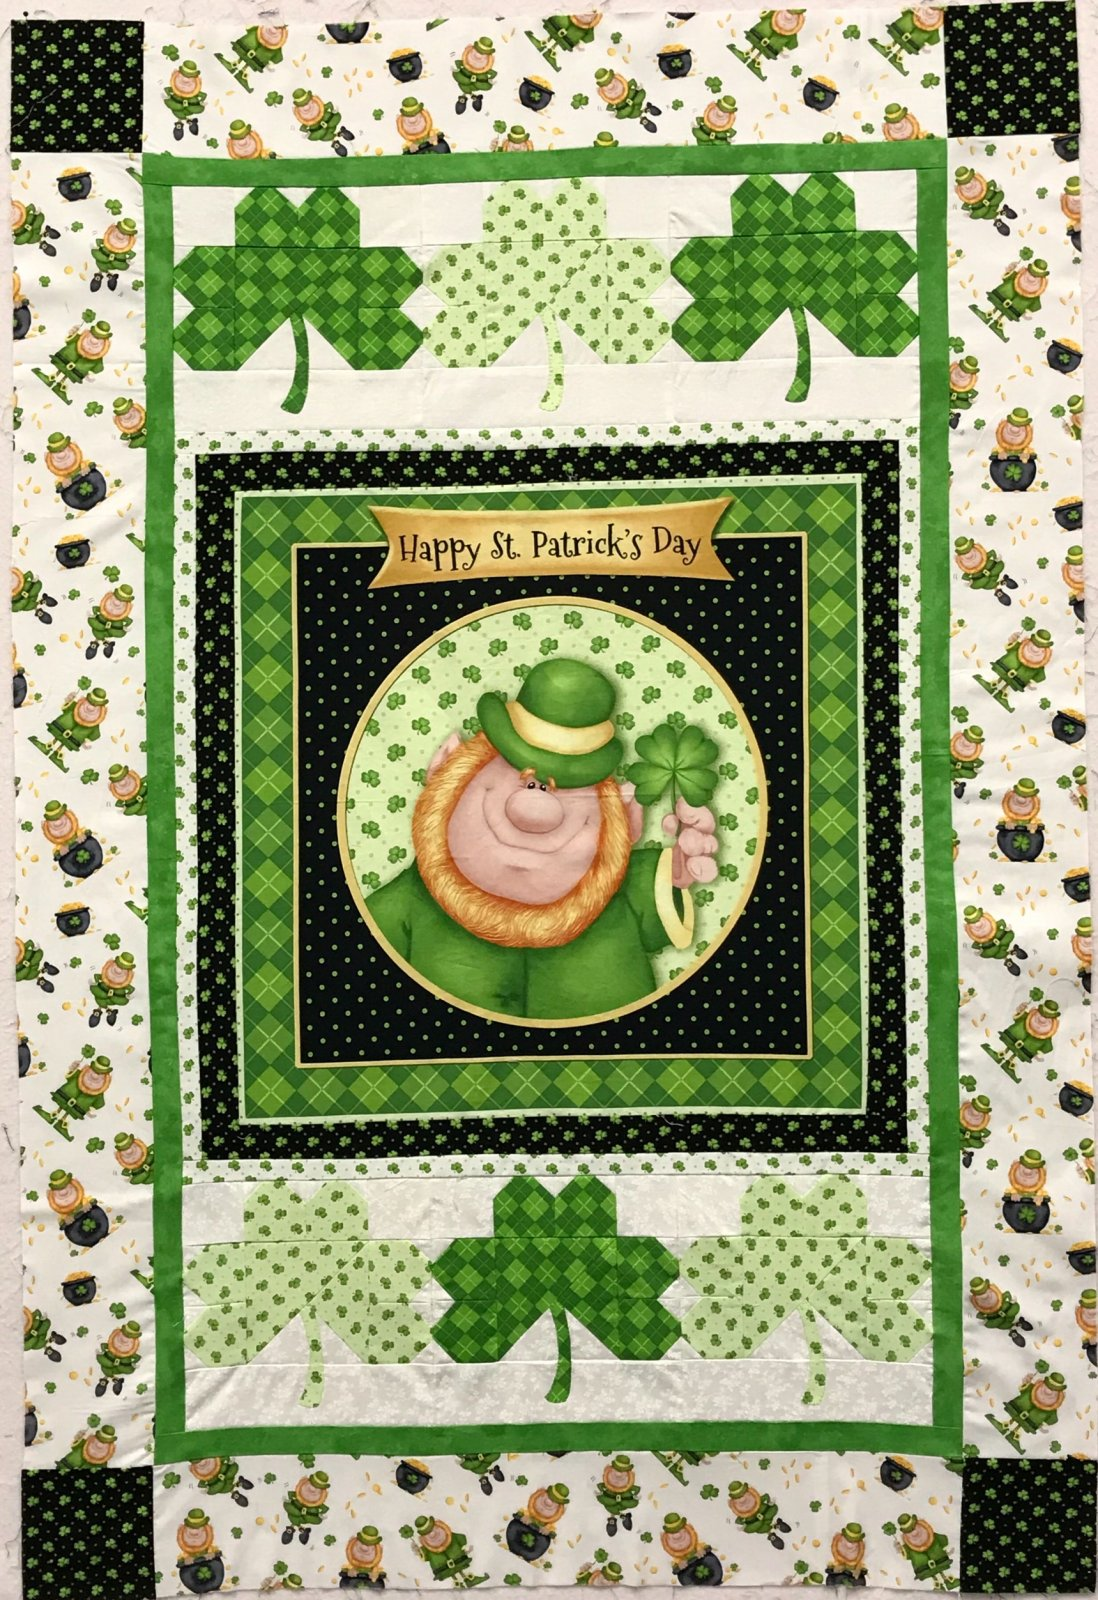 Lucky Me Wall Quilt Kit